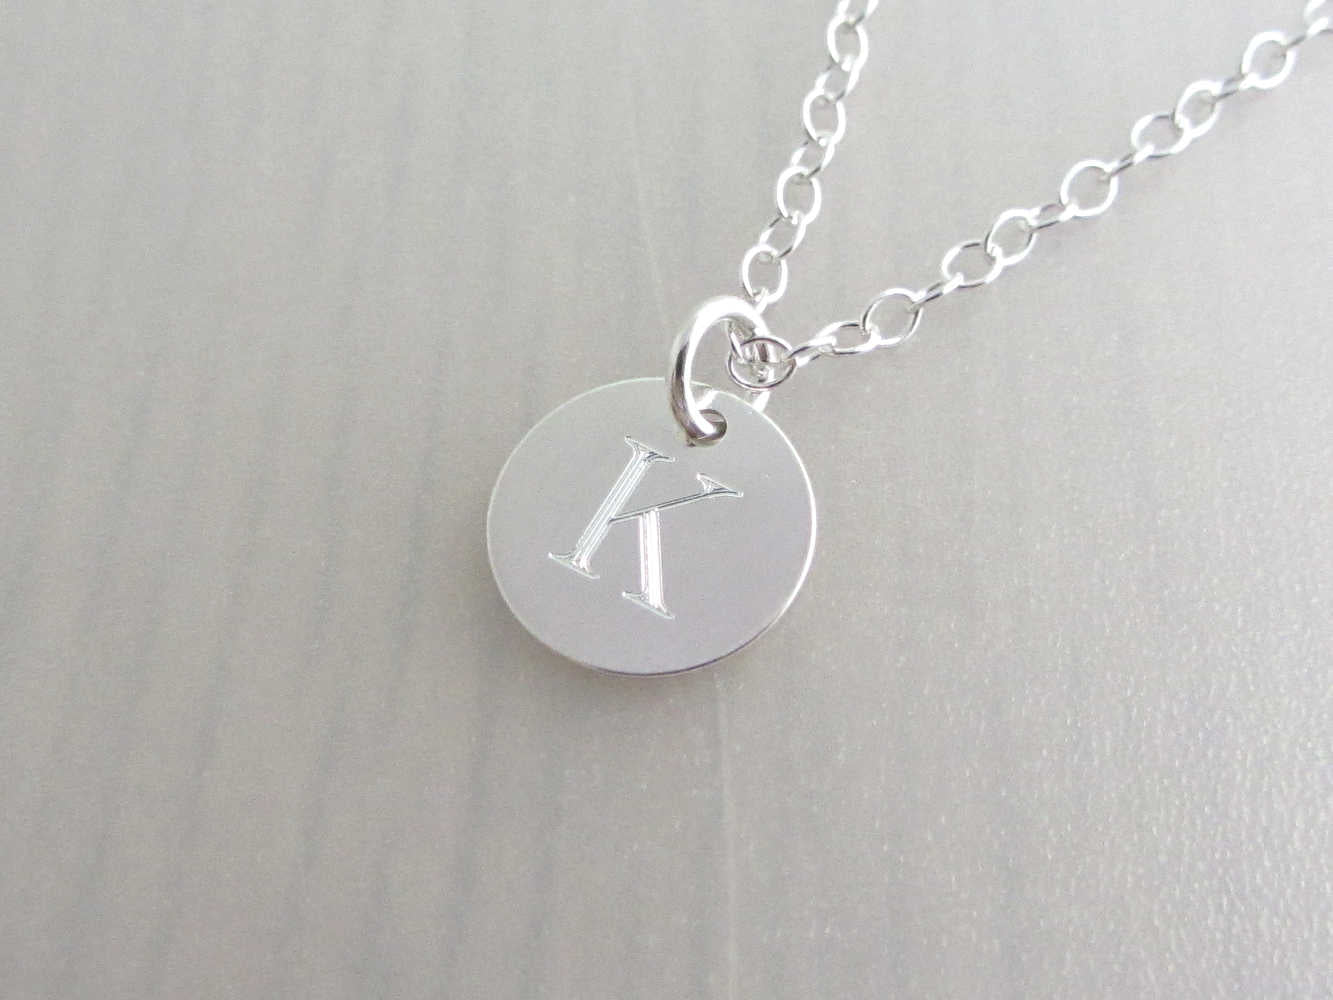 silver engraved capital initial letter disc charm on a silver chain